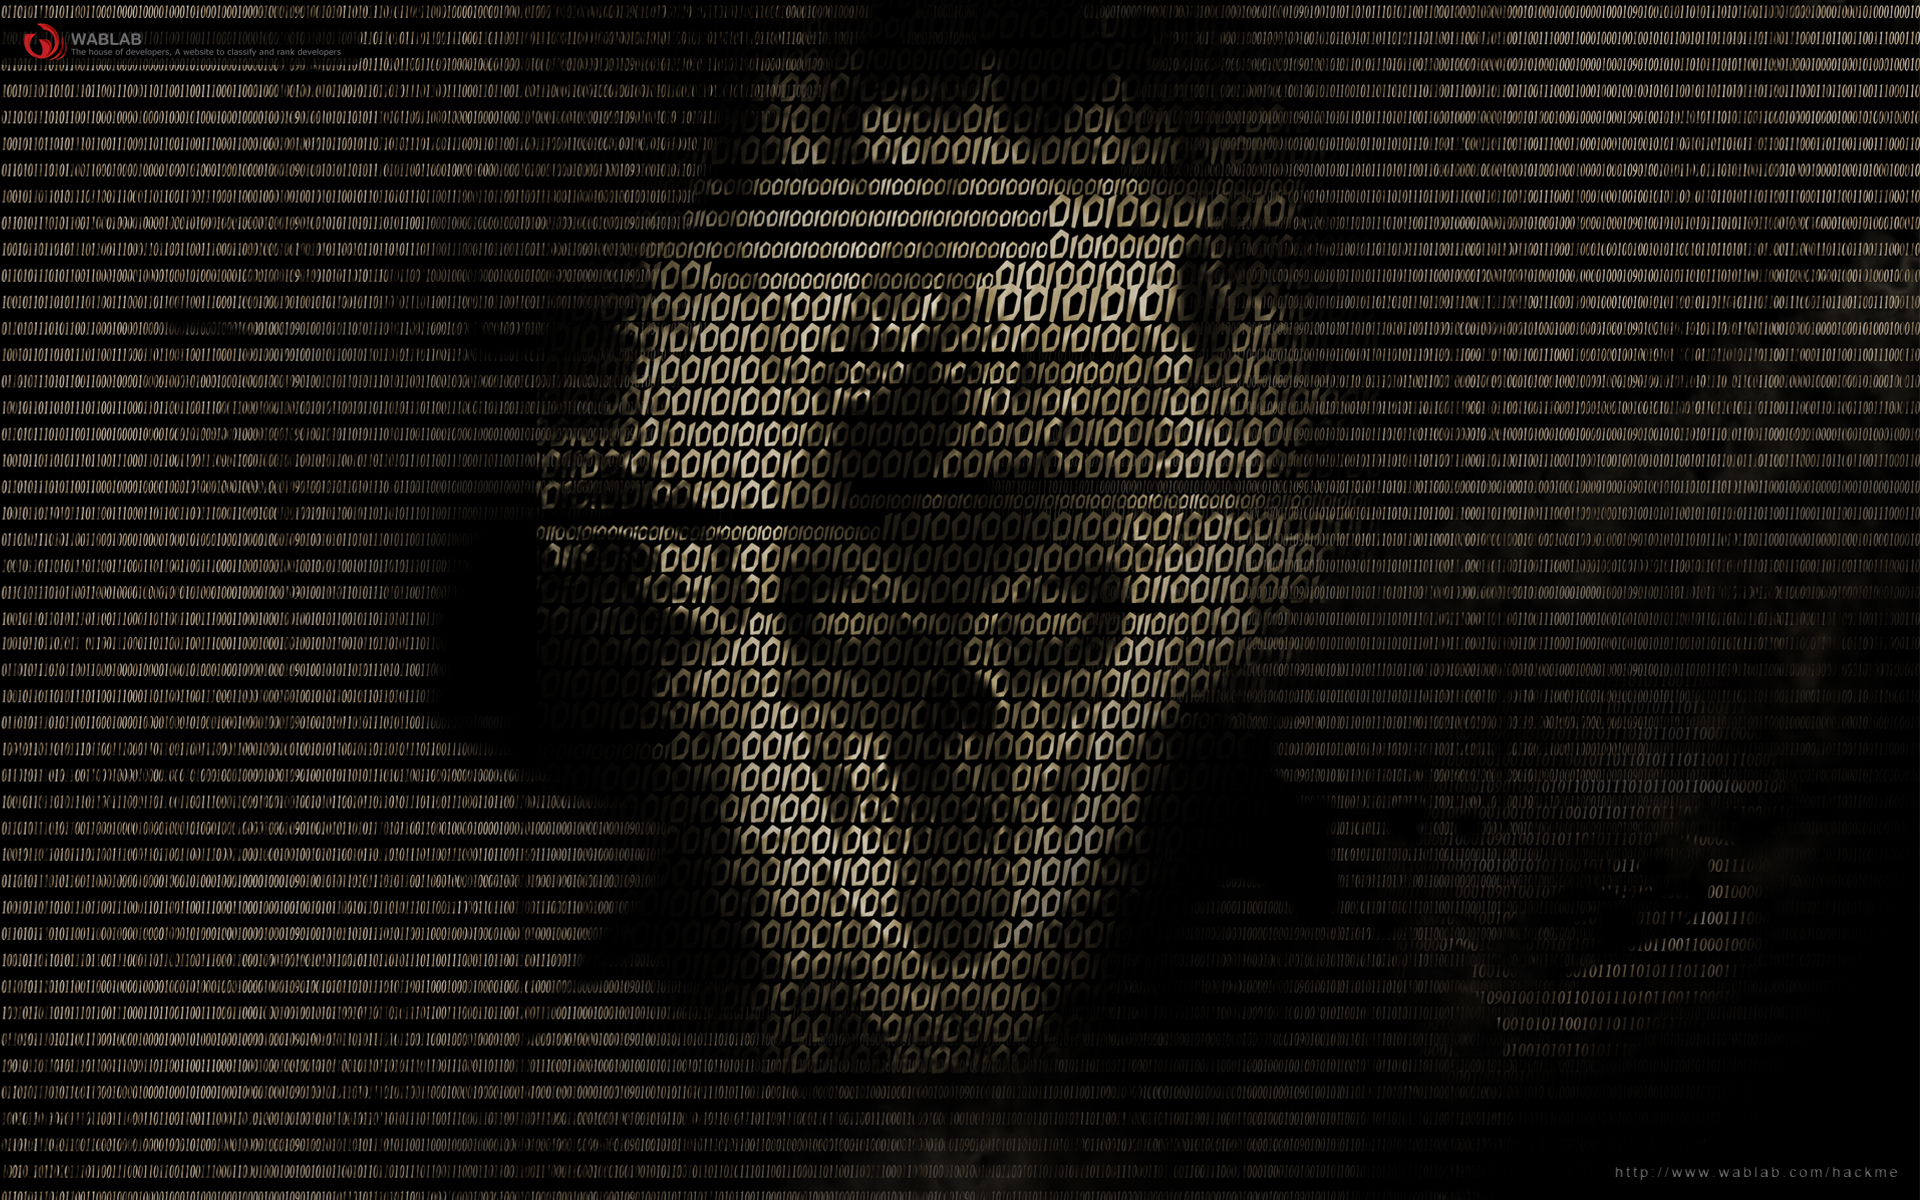 V.84 Hacking Wallpaper - Hacking Images